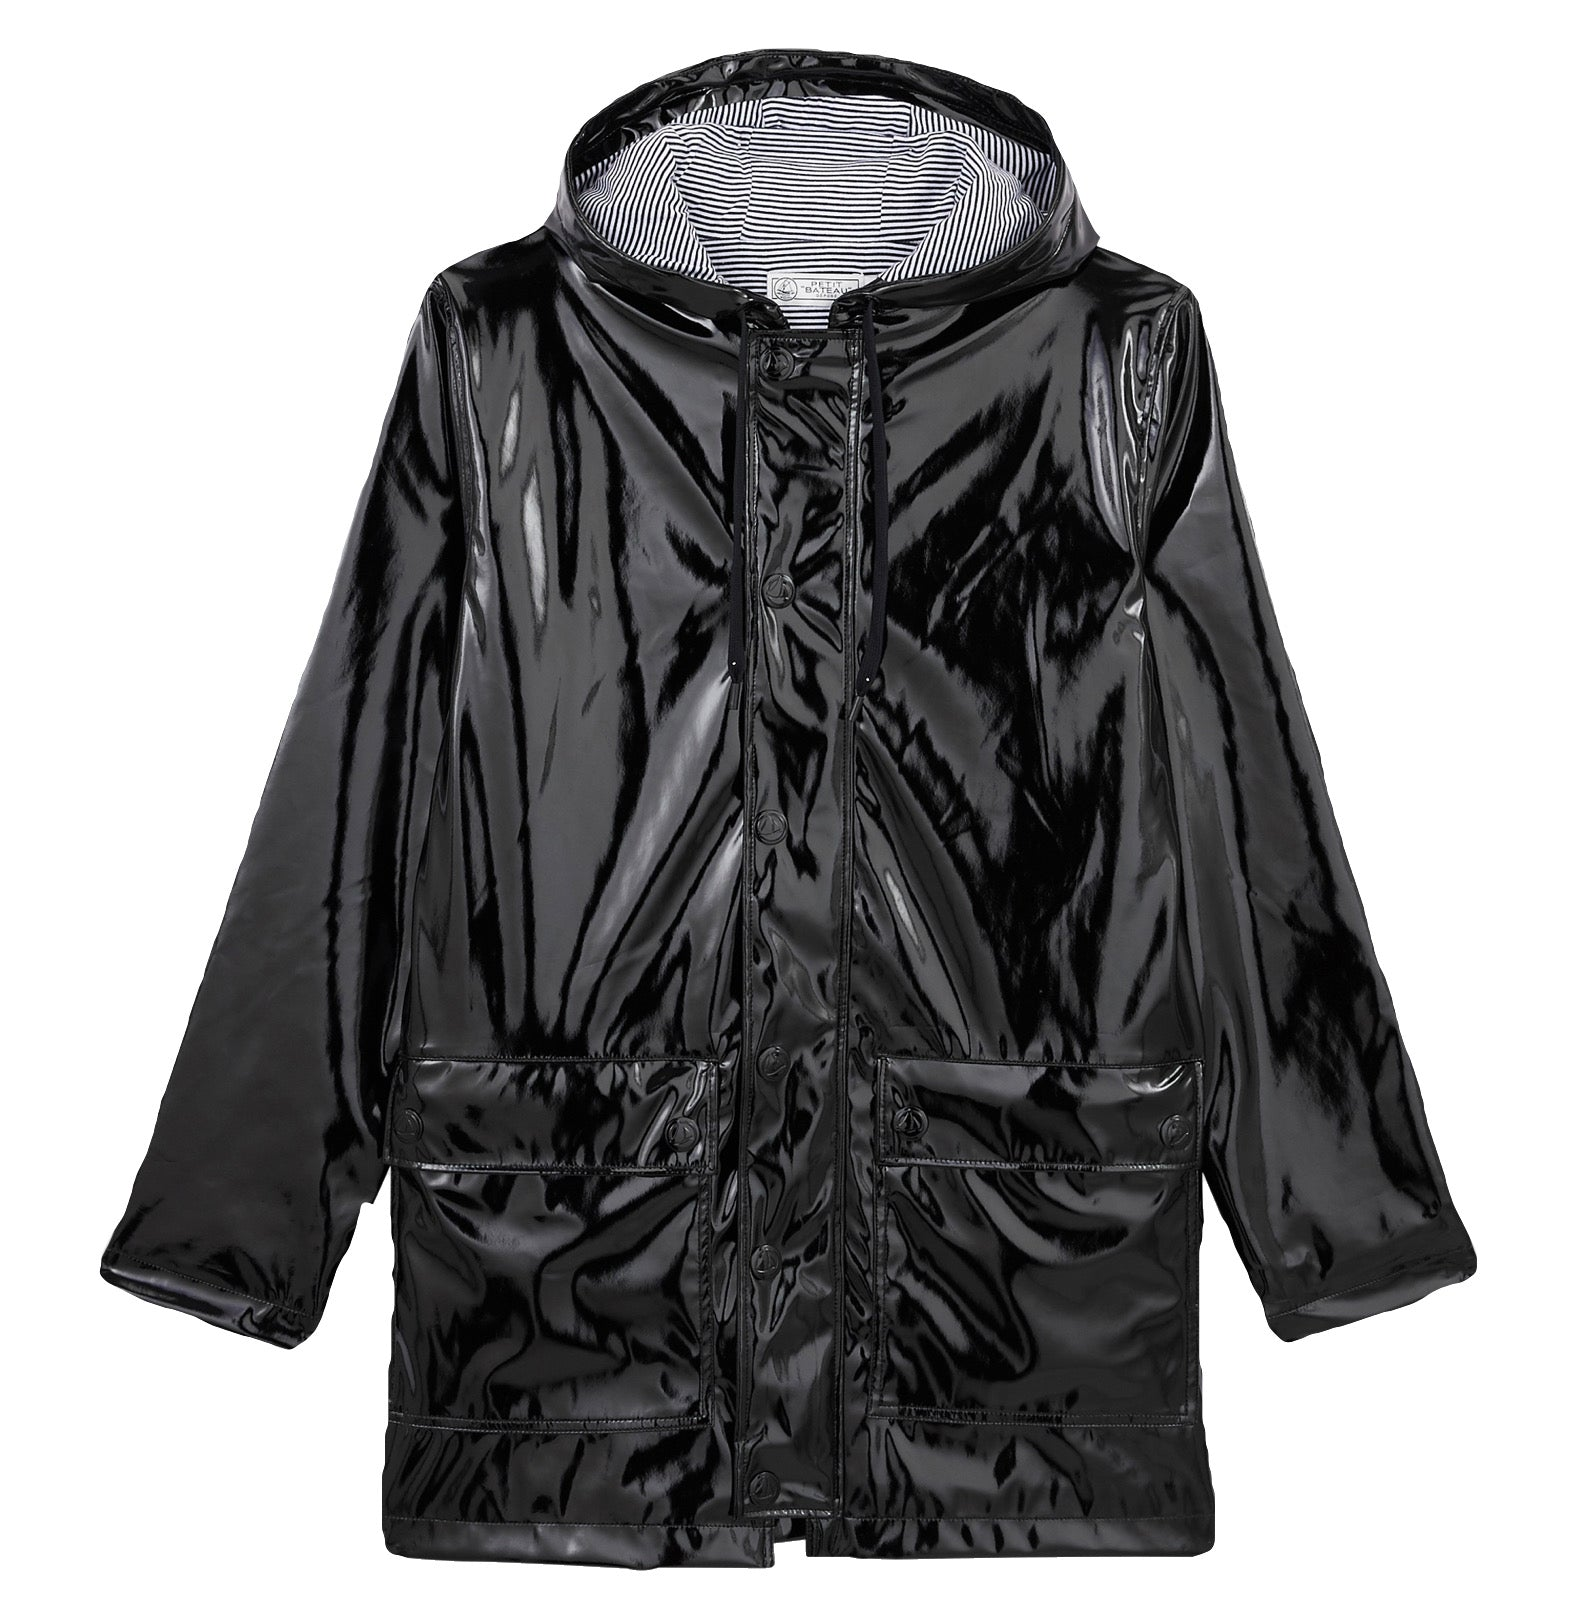 Hooded Rain Slicker in Black